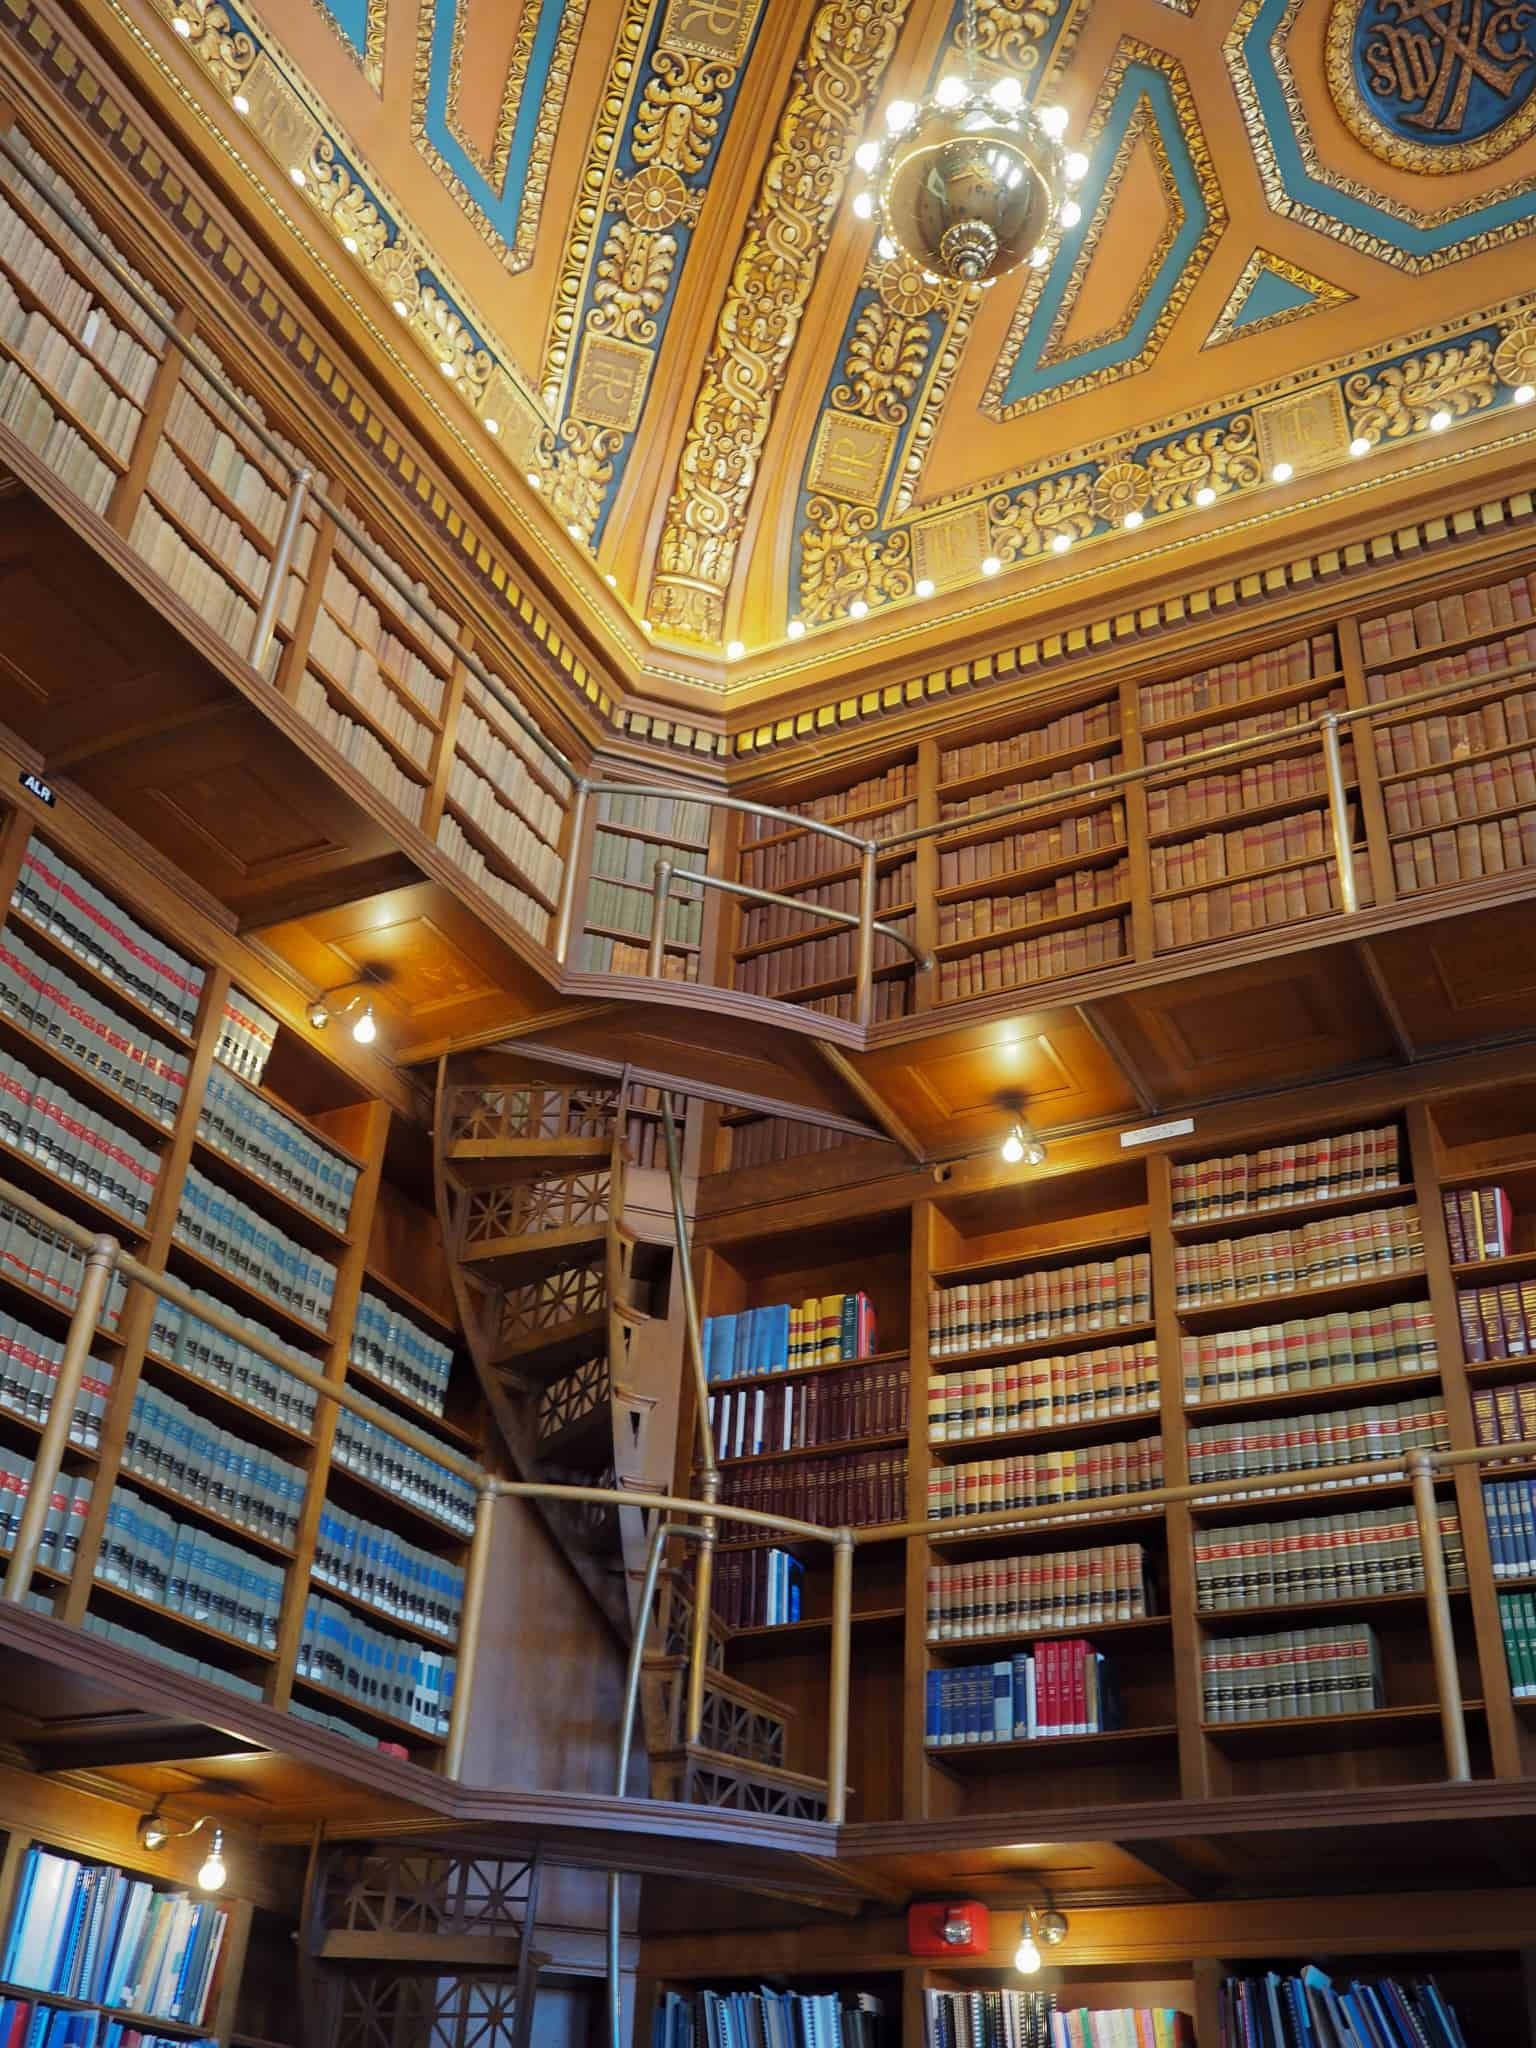 The State House Library: Intricate in detail three tiered room with books on each level. The library houses official documents and records of the United States. The library is also part of the Secretary of State's office.